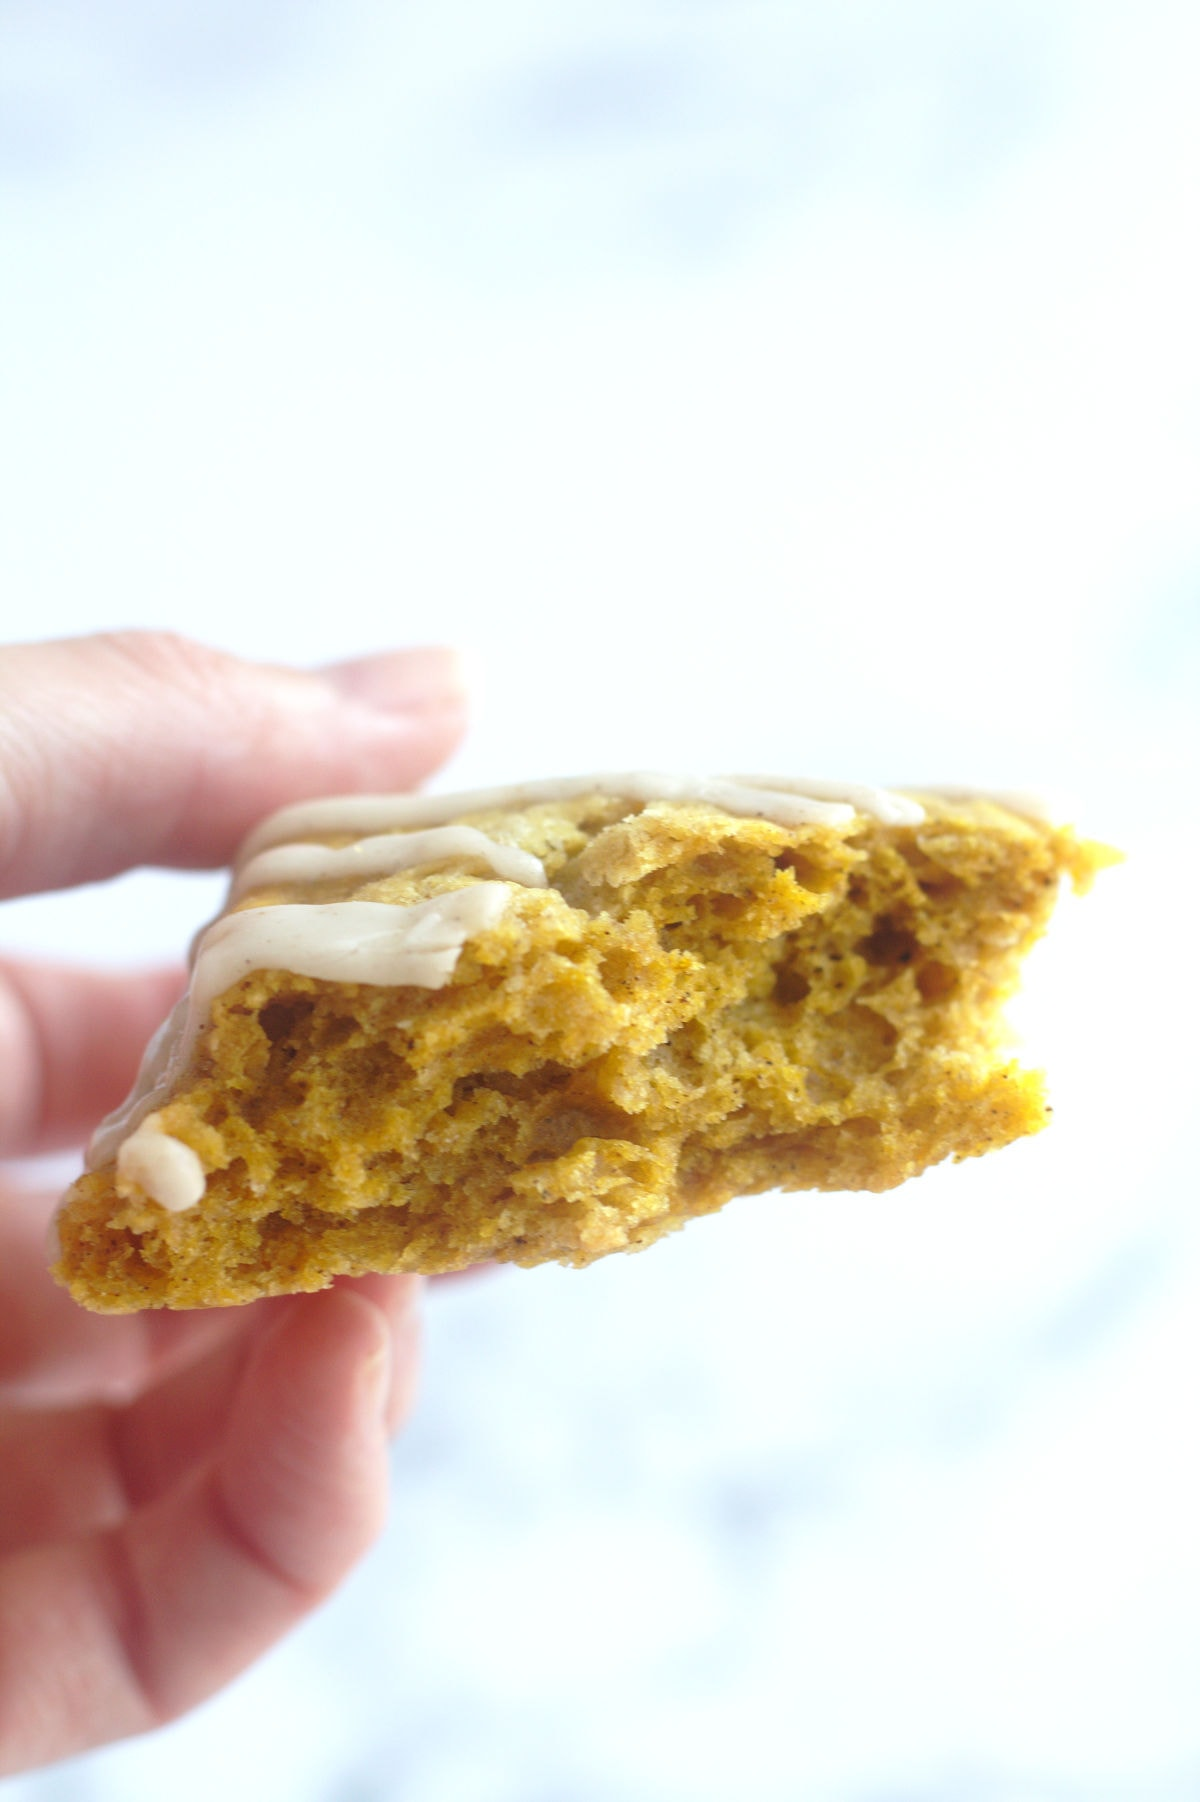 A piece of scone with a bite out of it, being held in someone's hand.